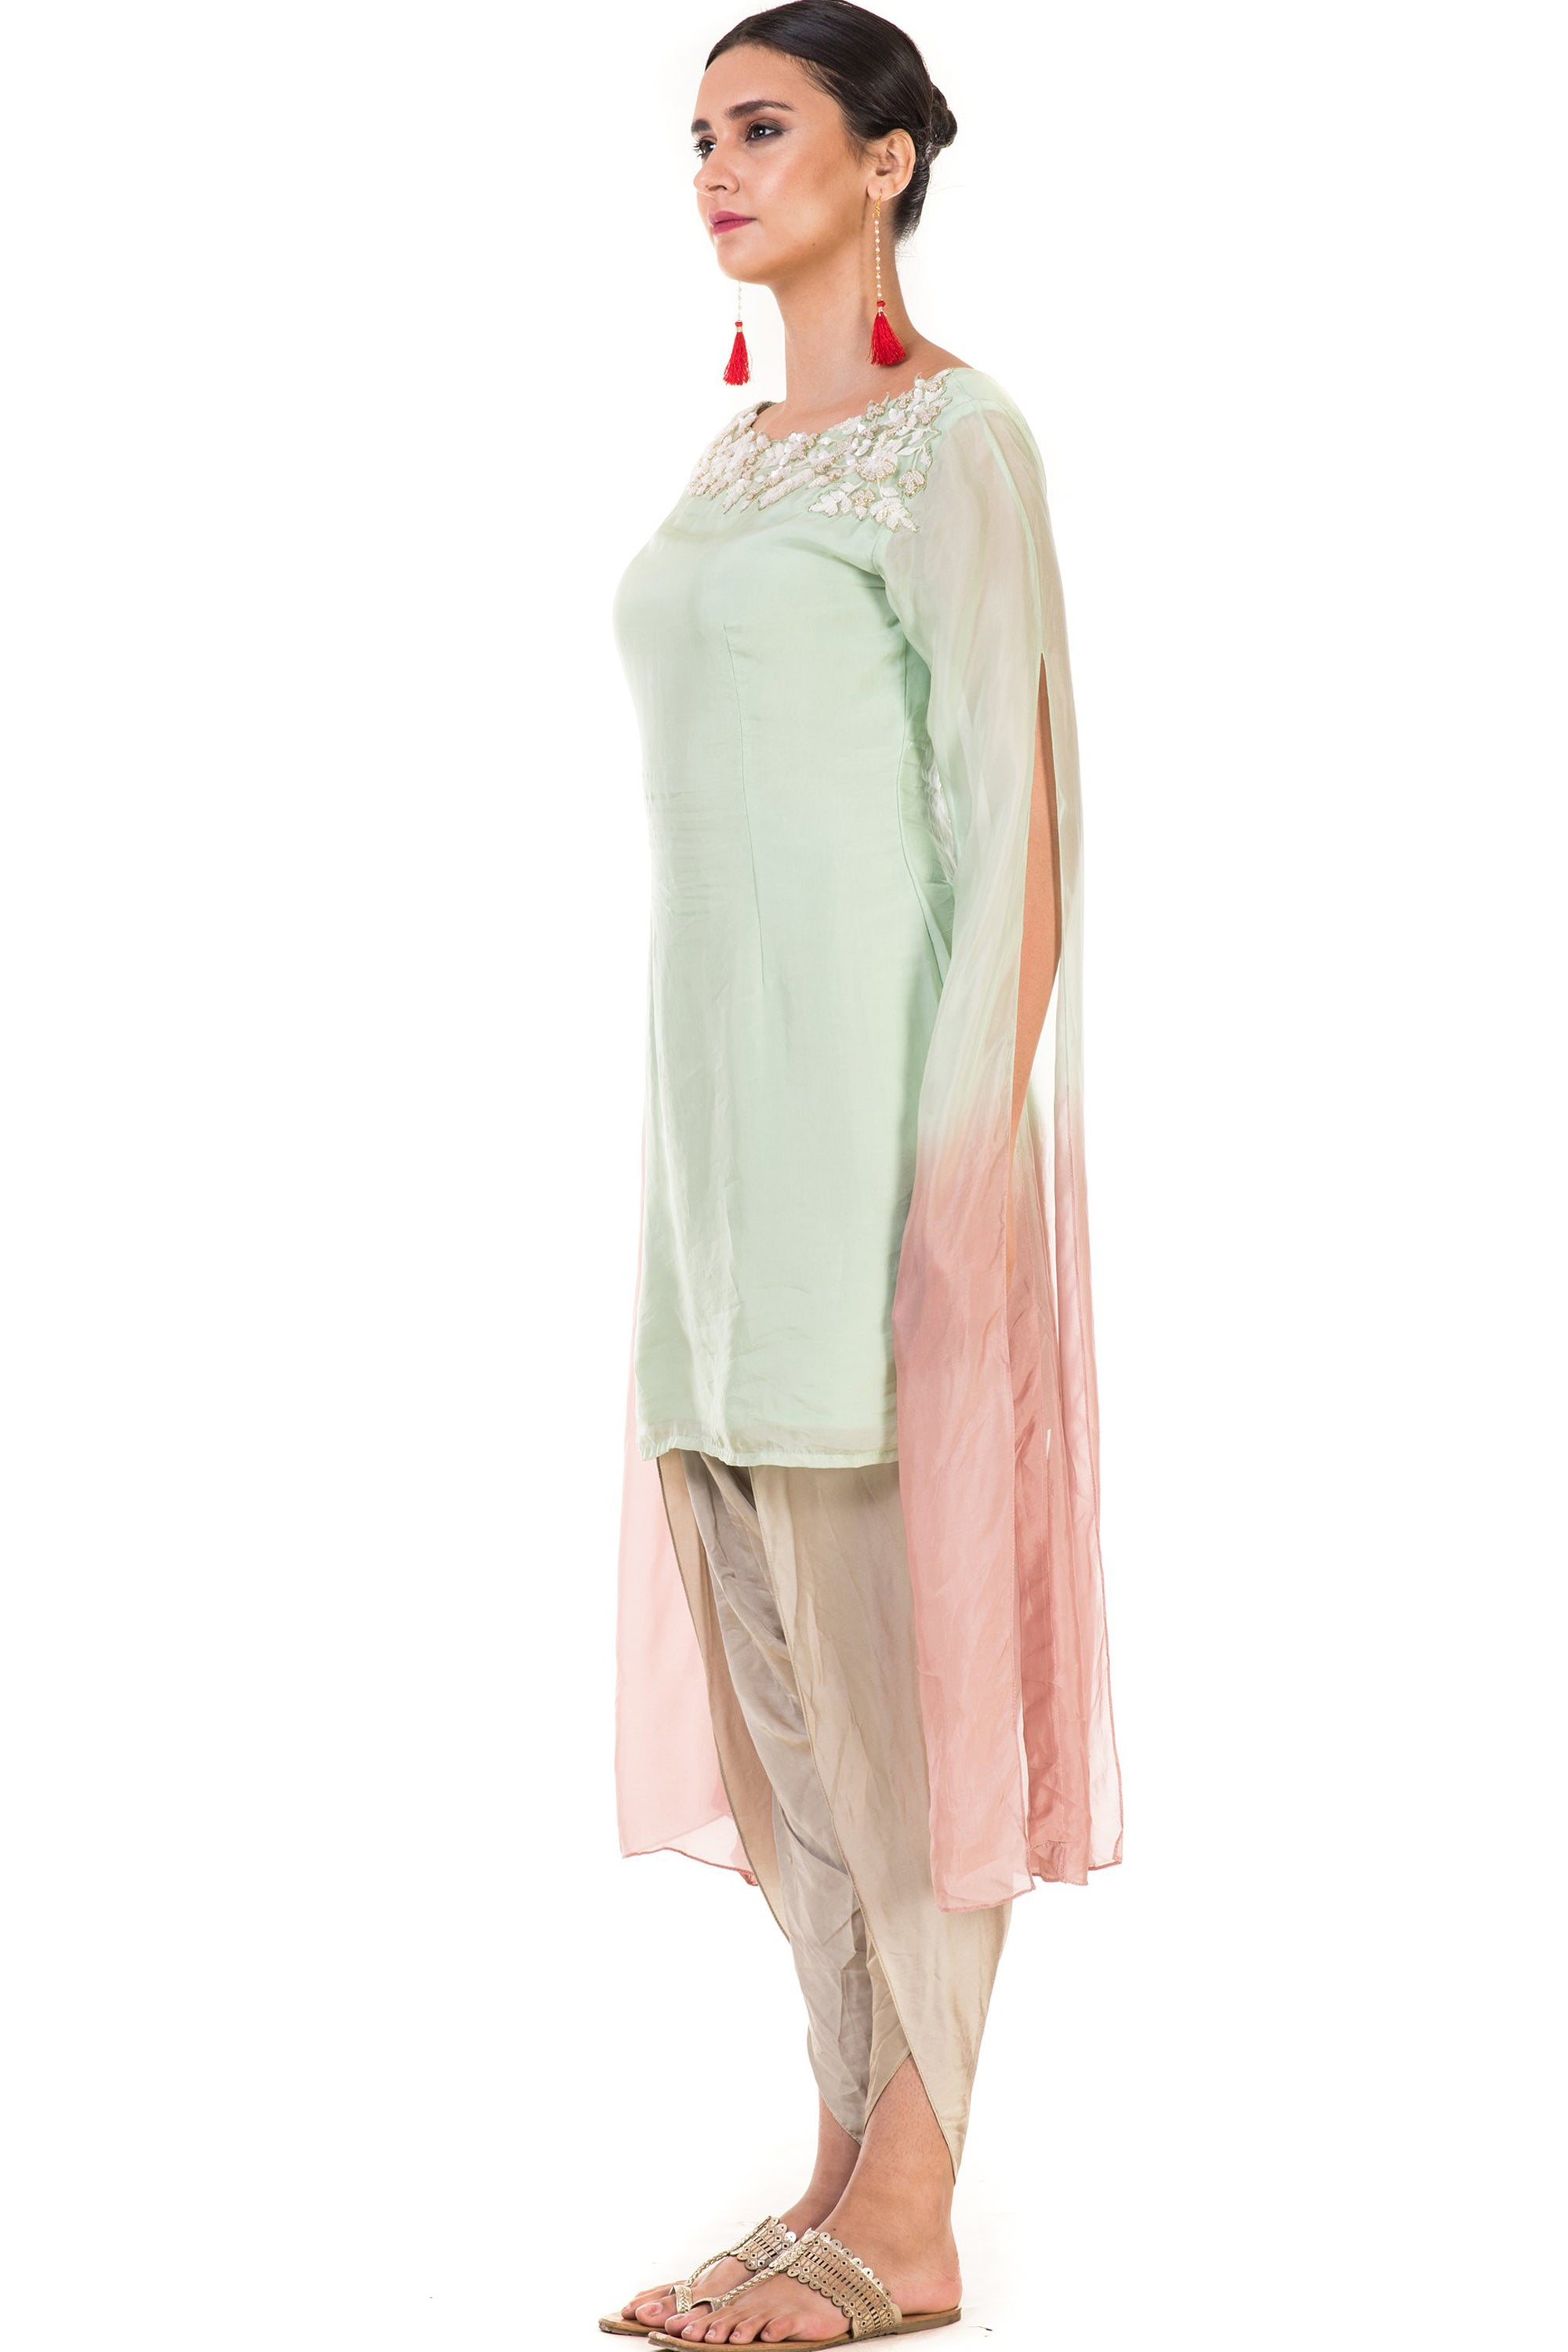 Hand Embroidered Green & Dusty Pink Shaded Tunic with Dhoti Pants Side